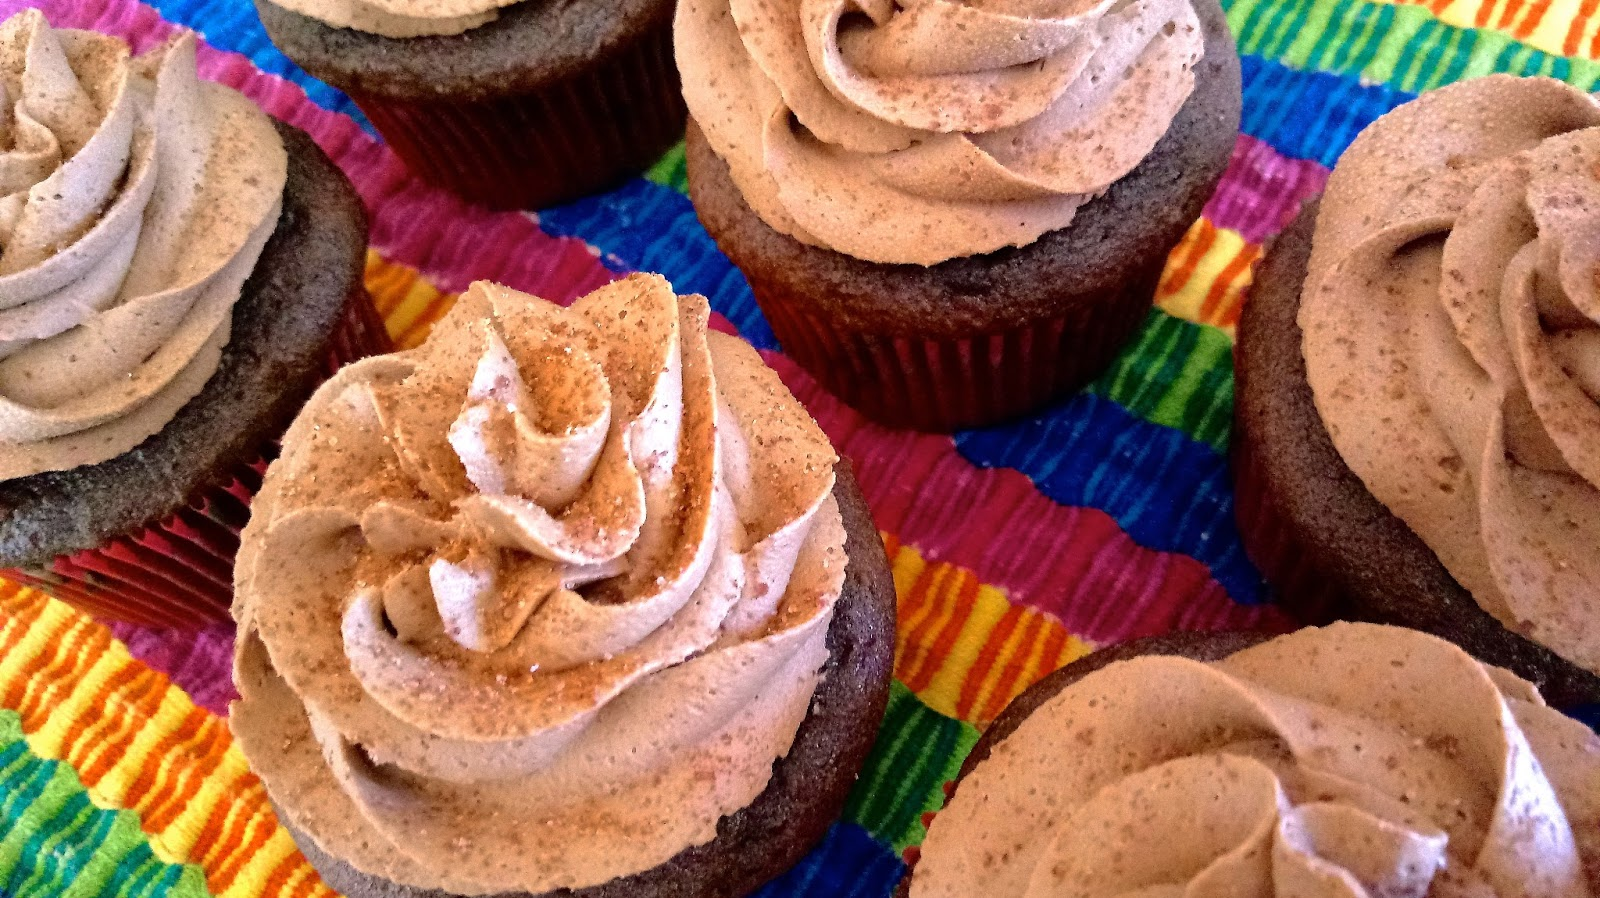 At Home With The Loverbees Mexican Hot Chocolate Cupcakes